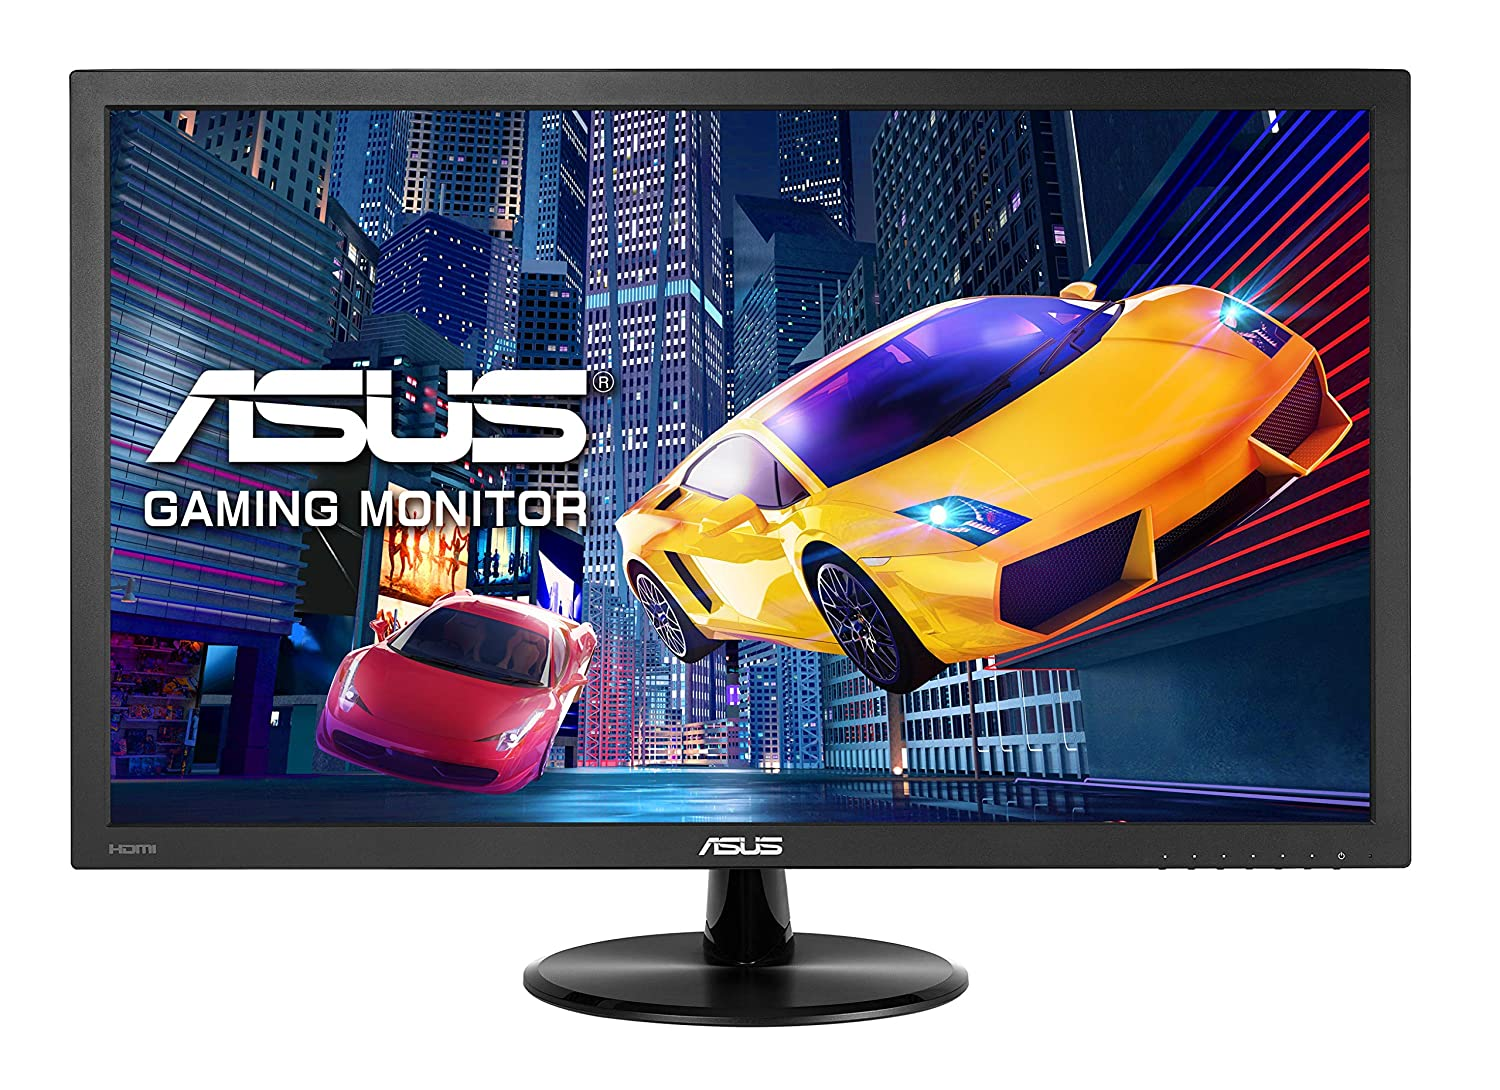 Asus VP228DE - Monitor 21.5' Full HD (1920 x 1080 pí xeles, LCD, 5ms, contraste 100000000:1, 200 cd/m² ), color negro Asustek Asus VP228DE - Monitor 21.5 Full HD (1920 x 1080 píxeles 200 cd/m²) 90LM01K0-B04170